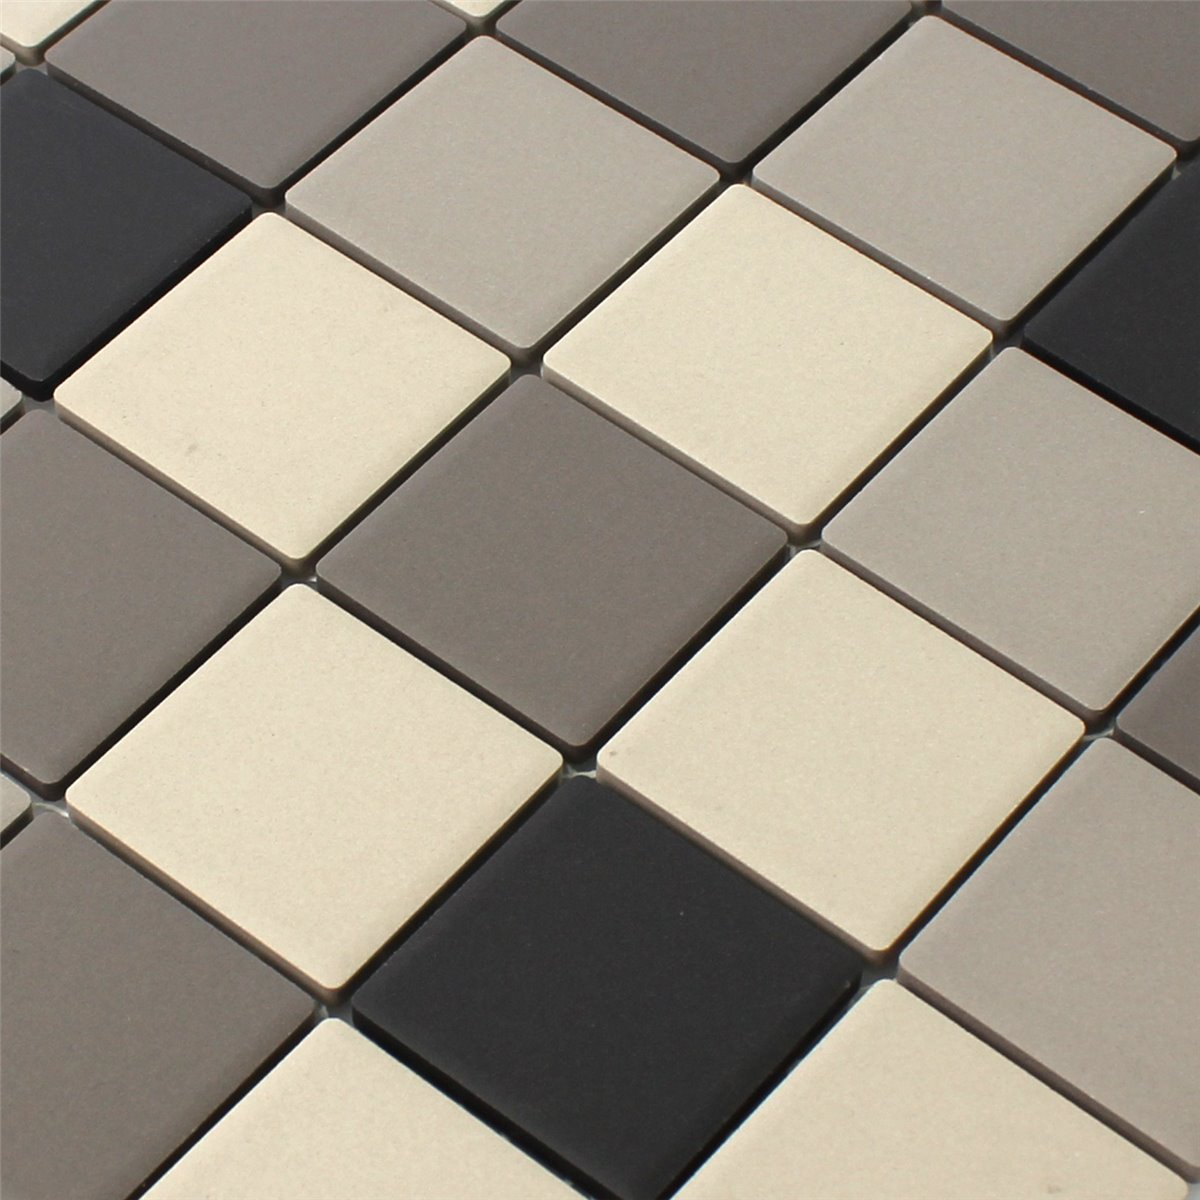 Ceramic Mosaic Tiles Grey Beige Non Slip Unglazed - TM33348